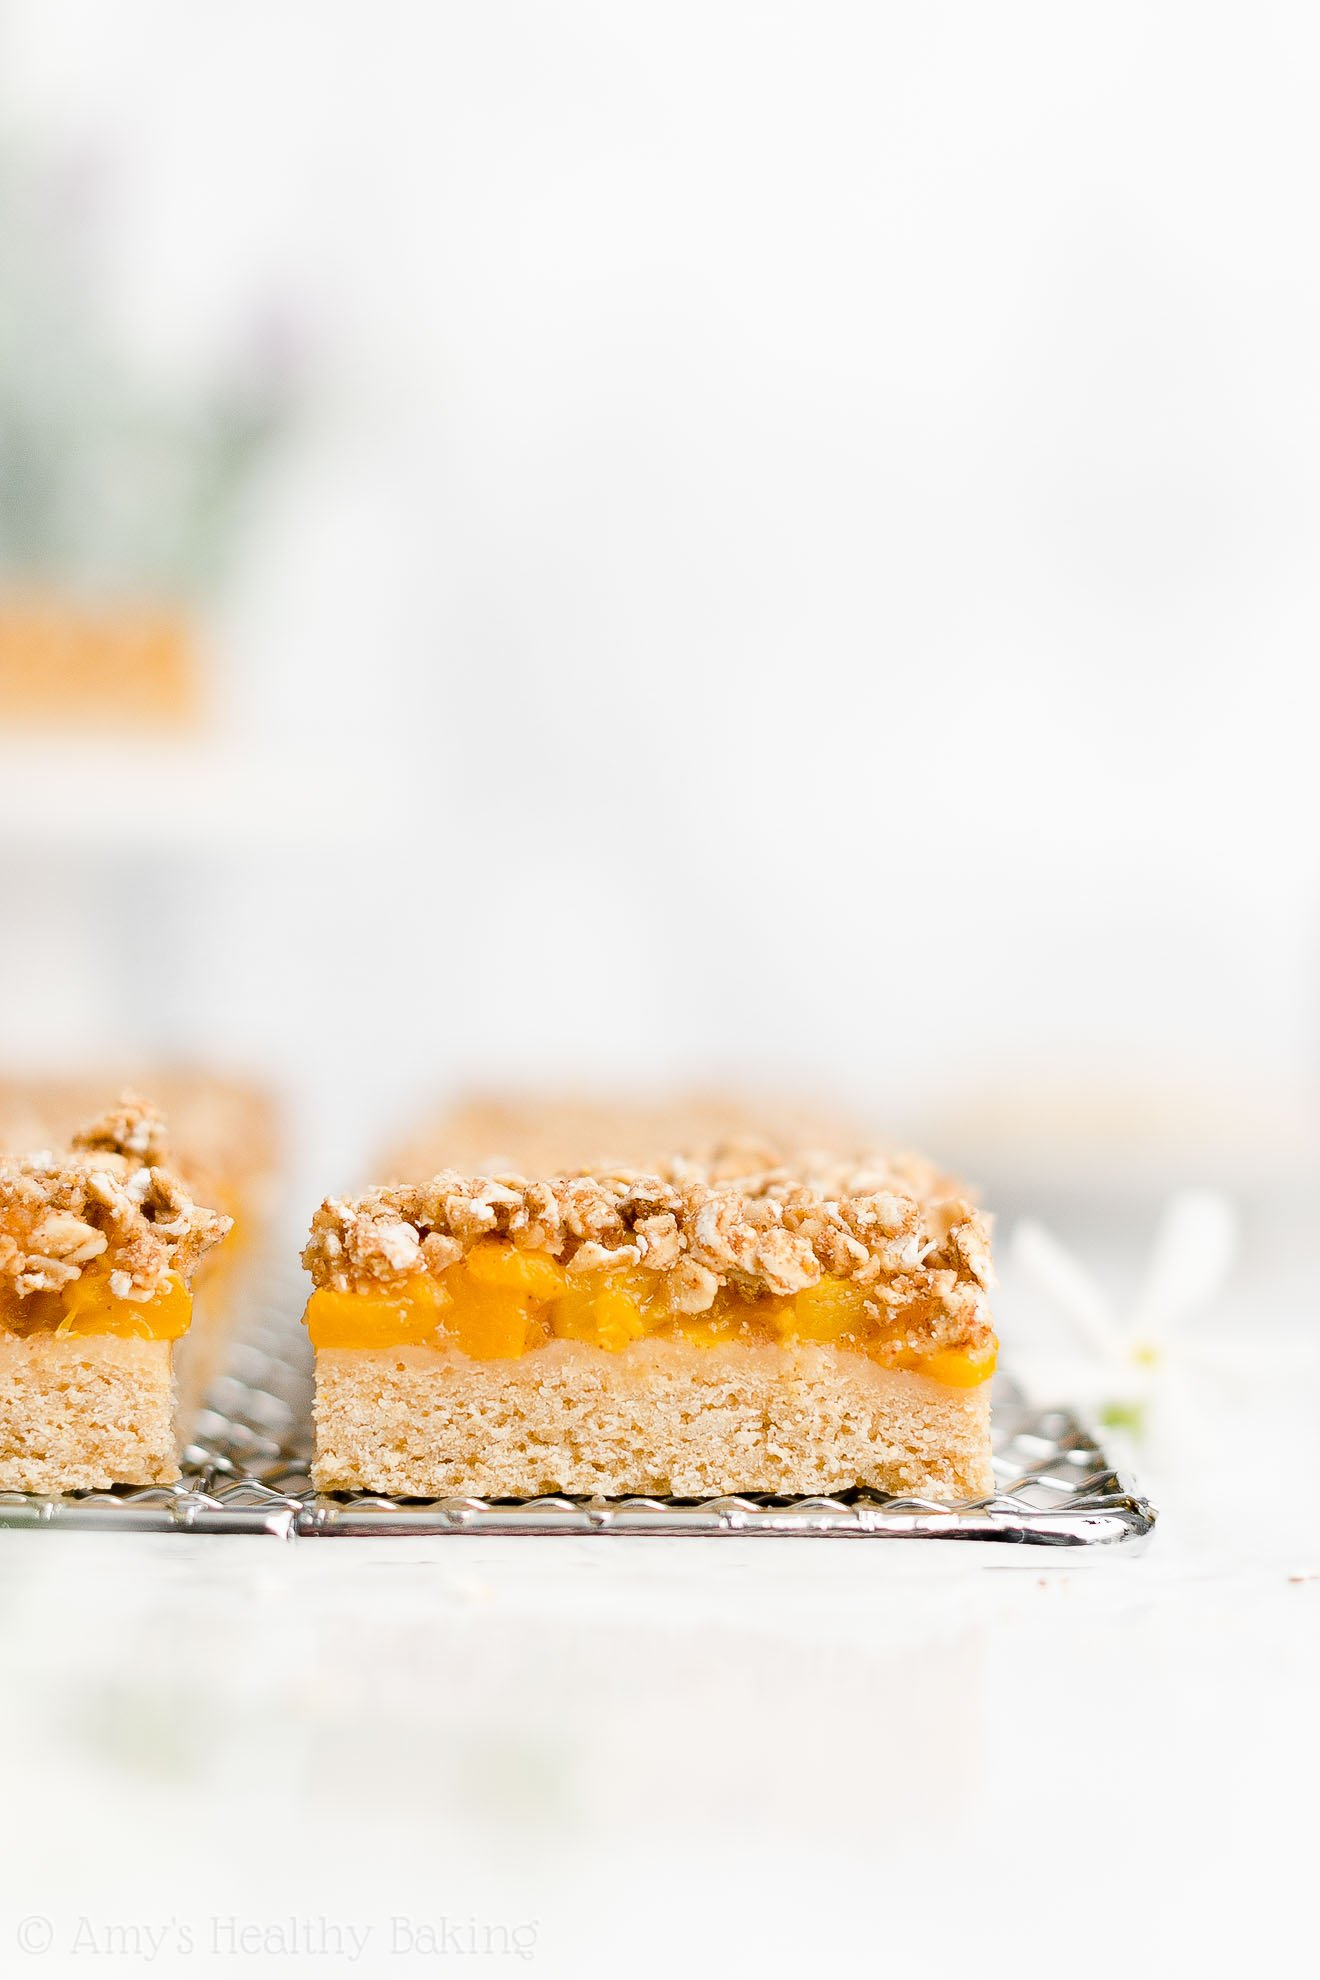 Beset Easy Healthy Clean Vegan No Egg Low Sugar Peach Oat Crumble Bars